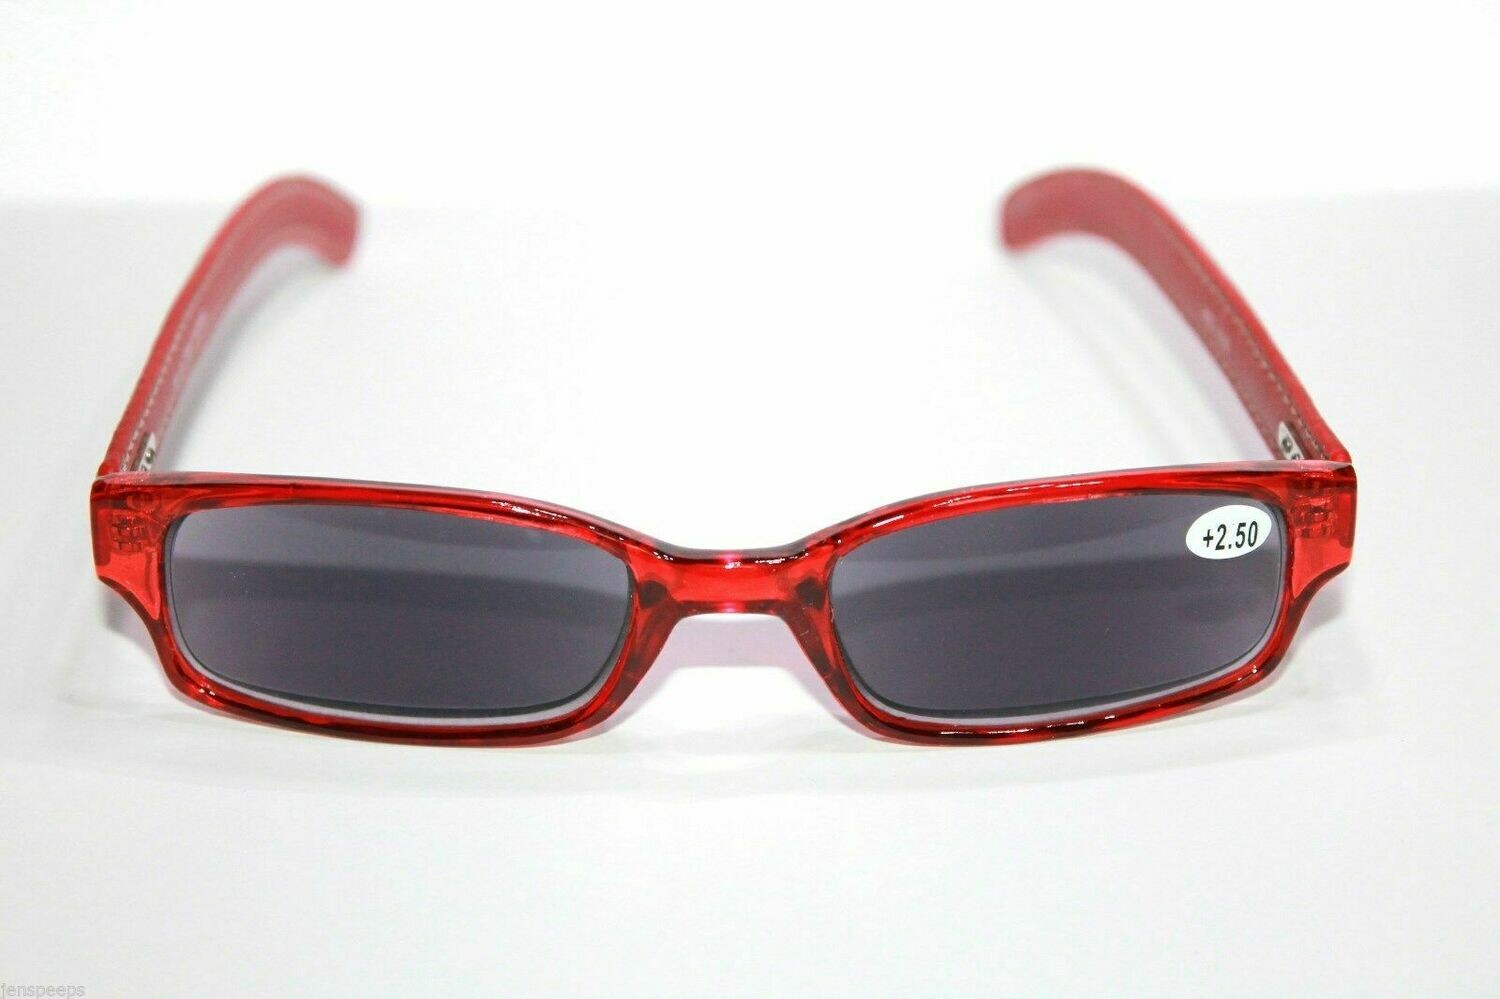 New Nicole Miller +2.50 Sunglass readerRed with Leather temples Reading